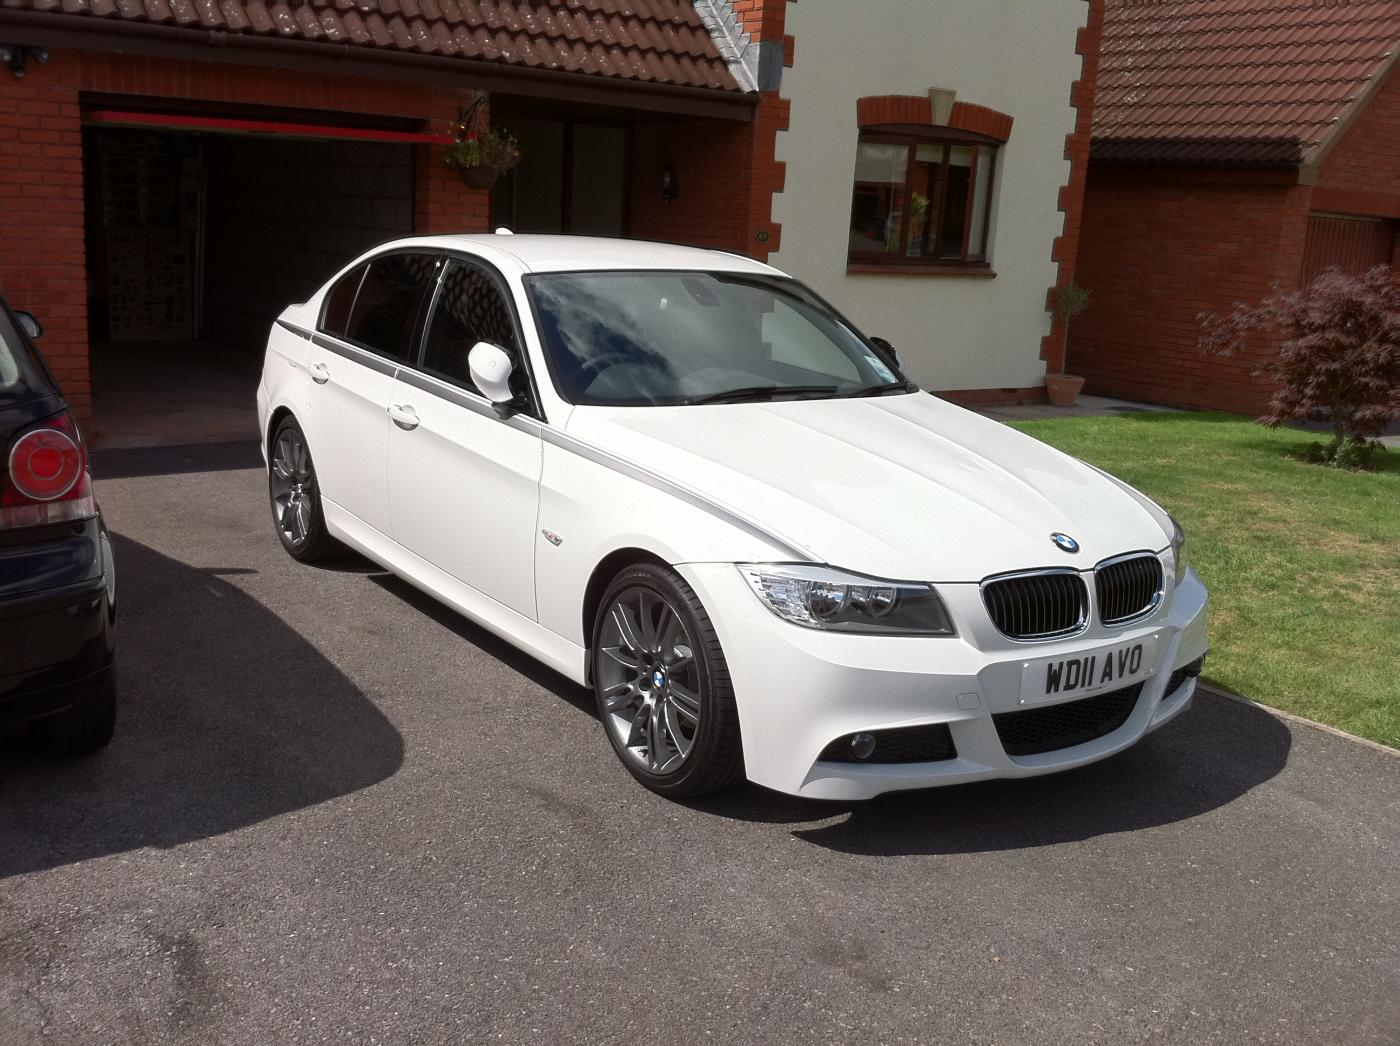 Why do people on here give the 318i a hard time